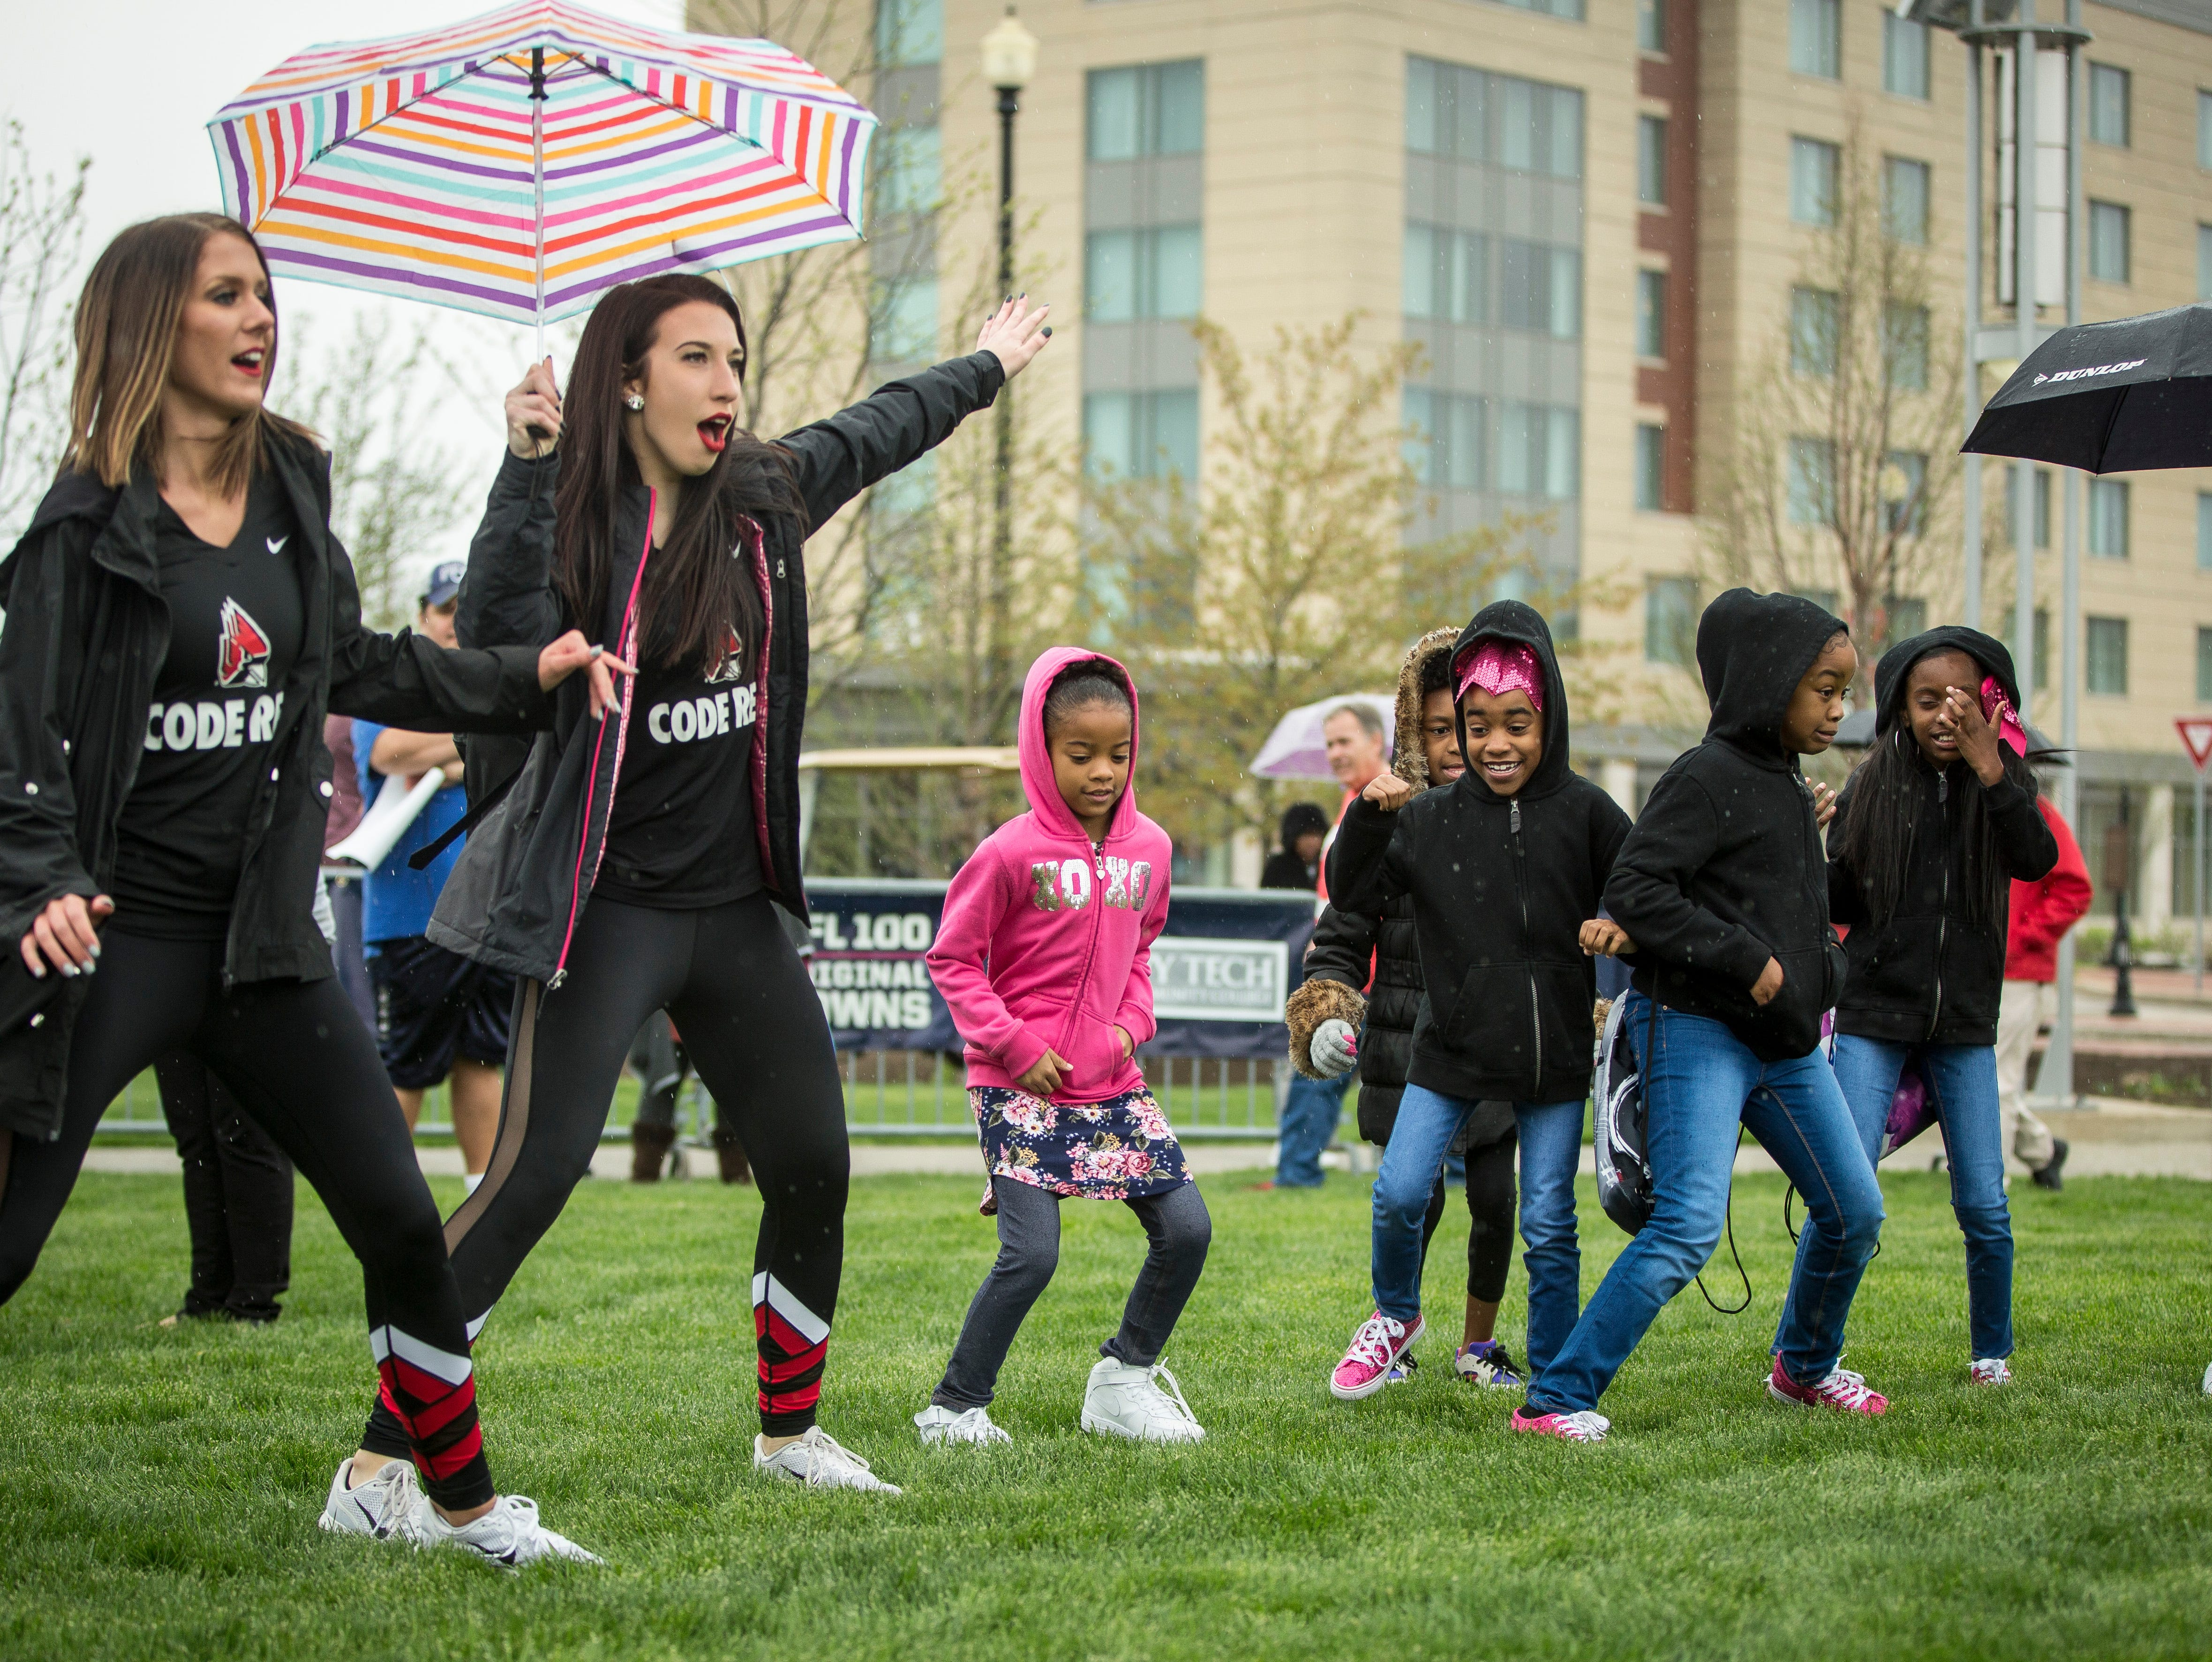 Kids dance, play catch and more on April 27 during the Draft Day Tailgate event at Canan Commons. The event saw two live picks for the NFL draft in addition to the family fun.